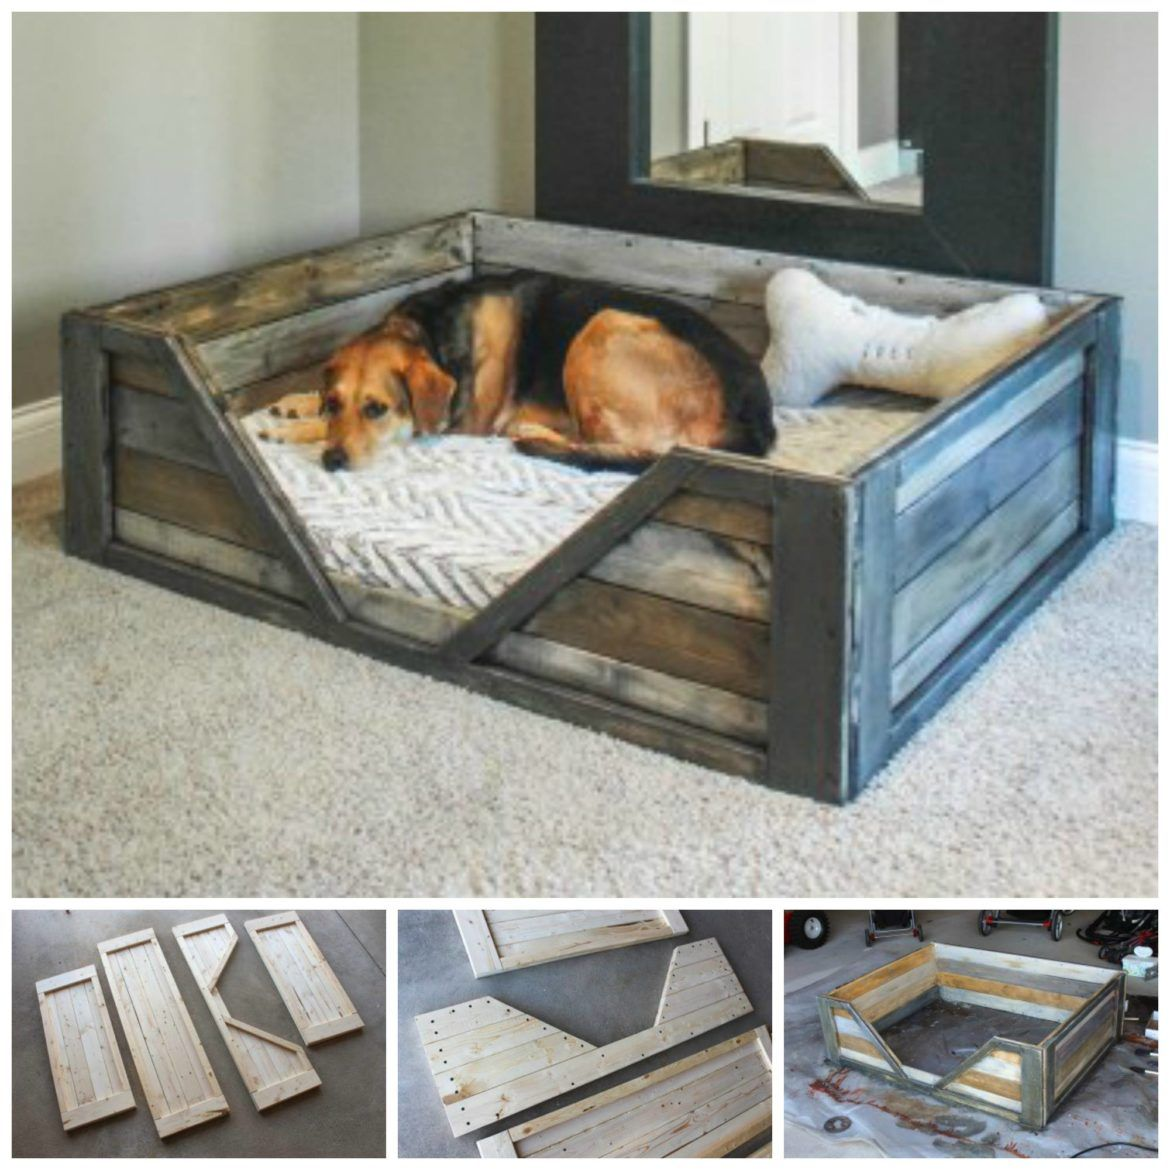 How To Make Your Furbaby A Cute Pallet Dog Bed Pallet